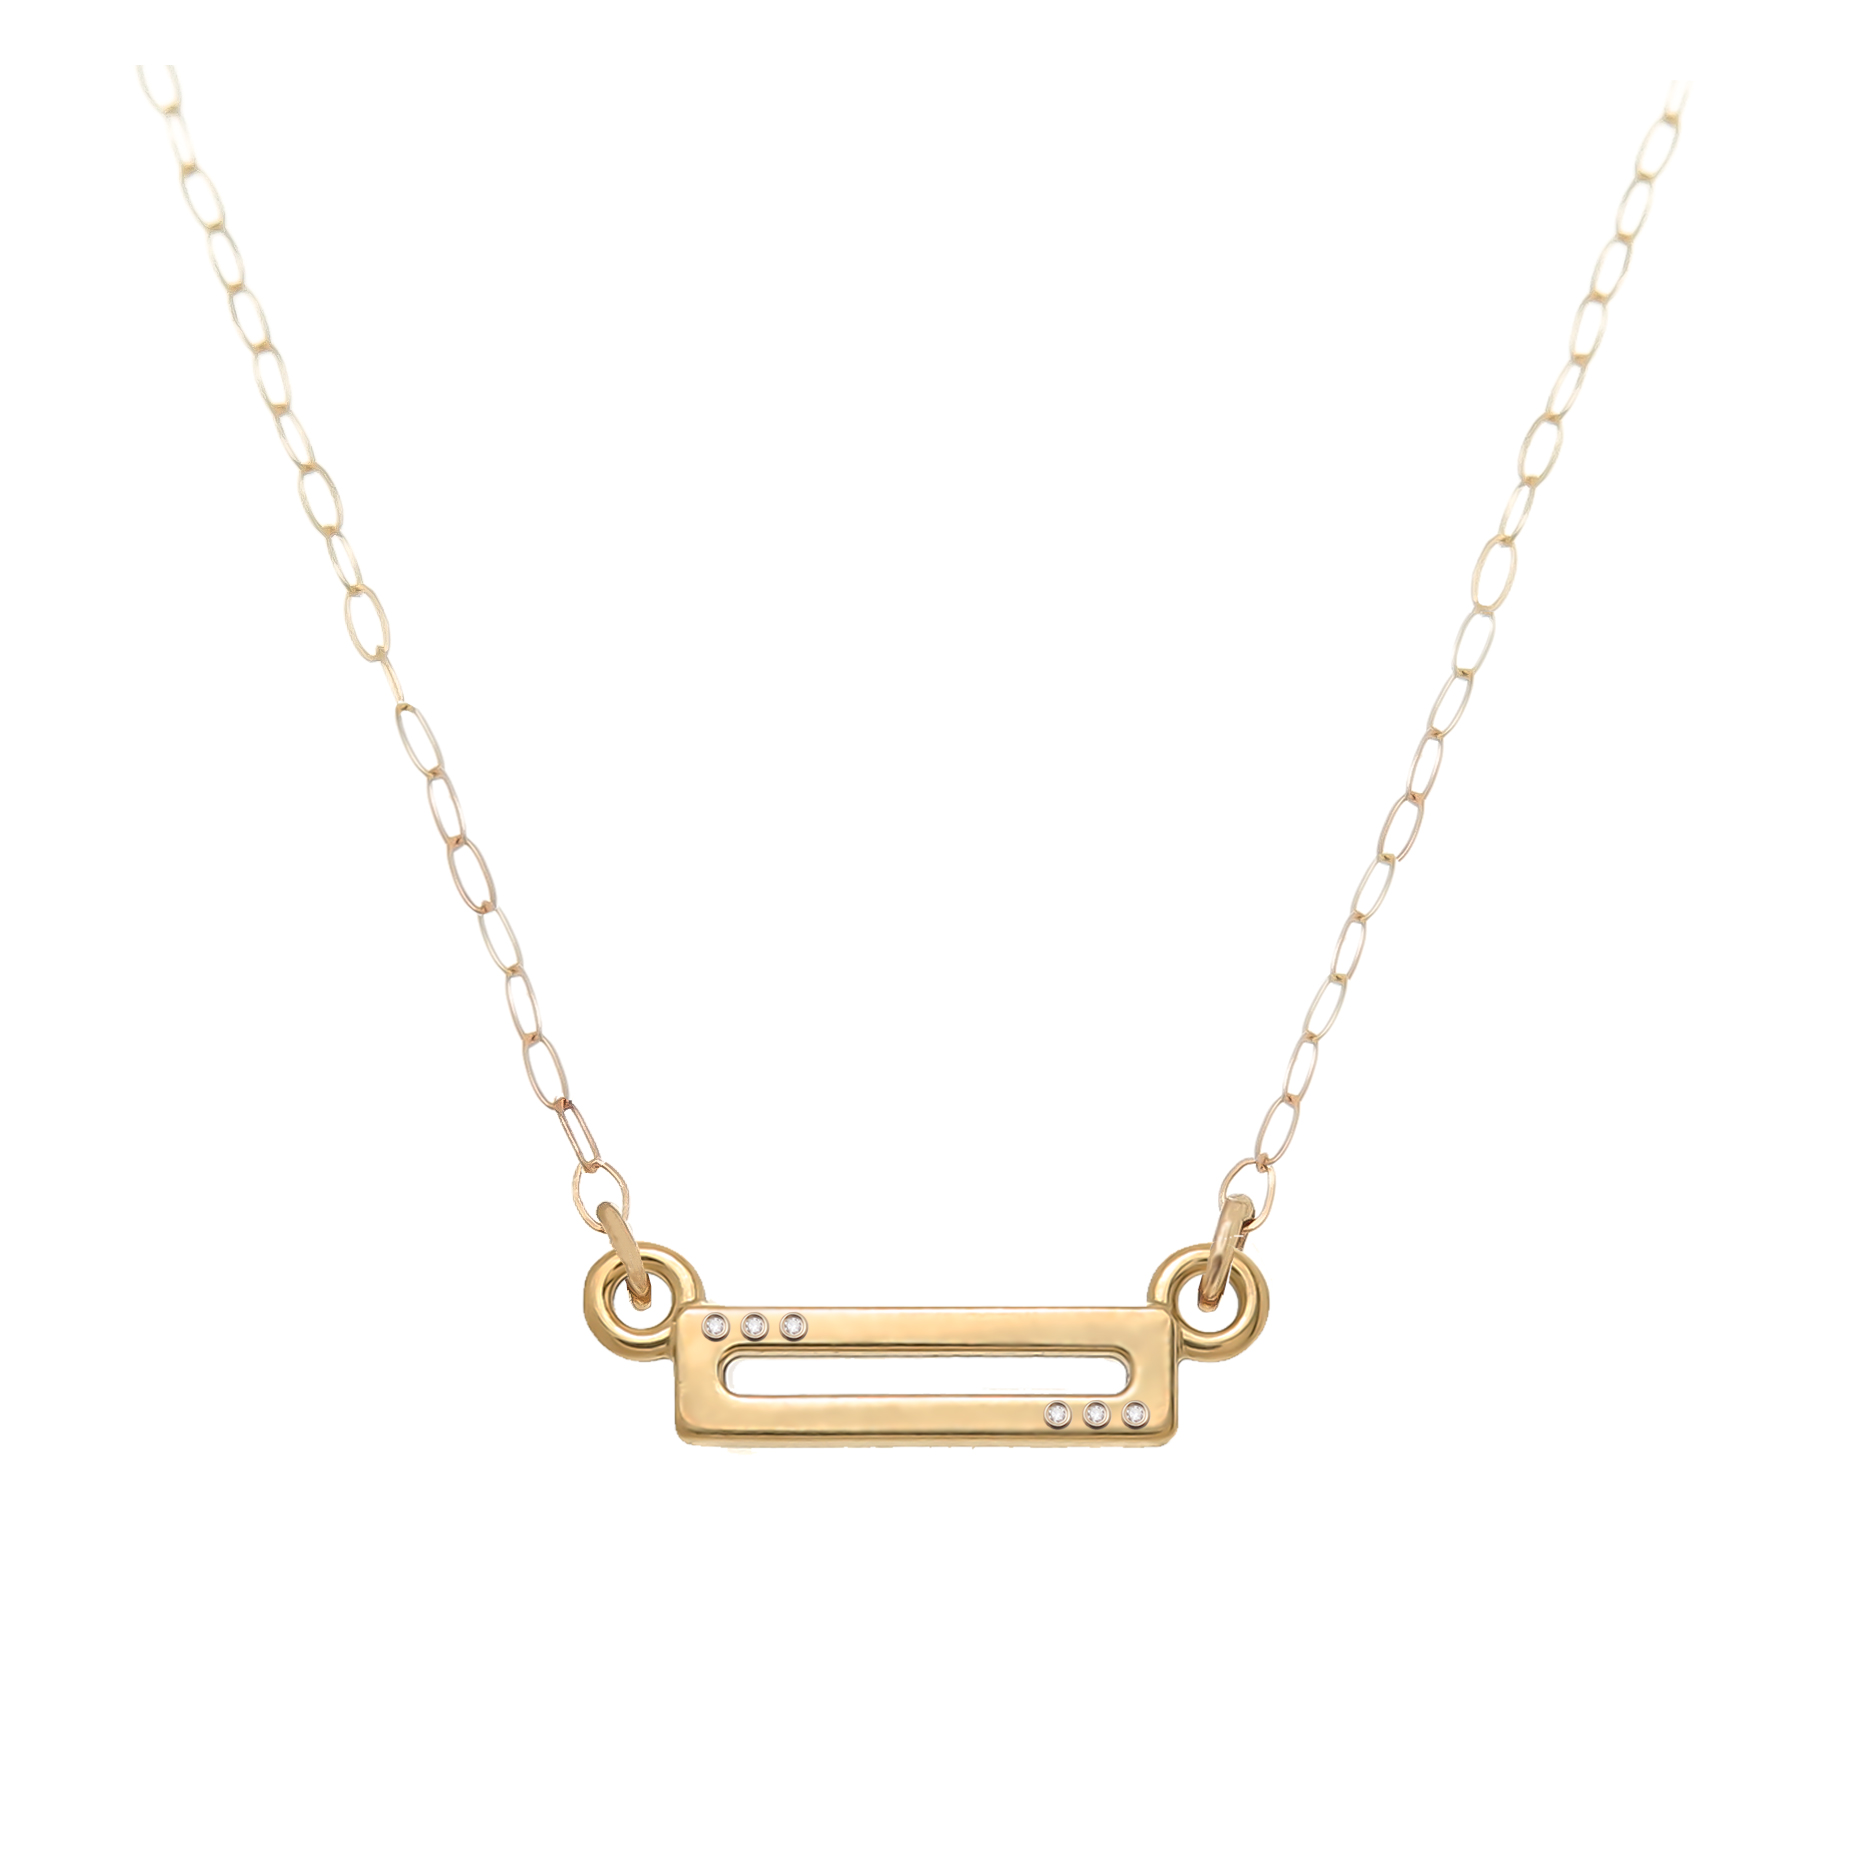 diamond-rectangle-necklace-by-kerry-gilligan.jpg